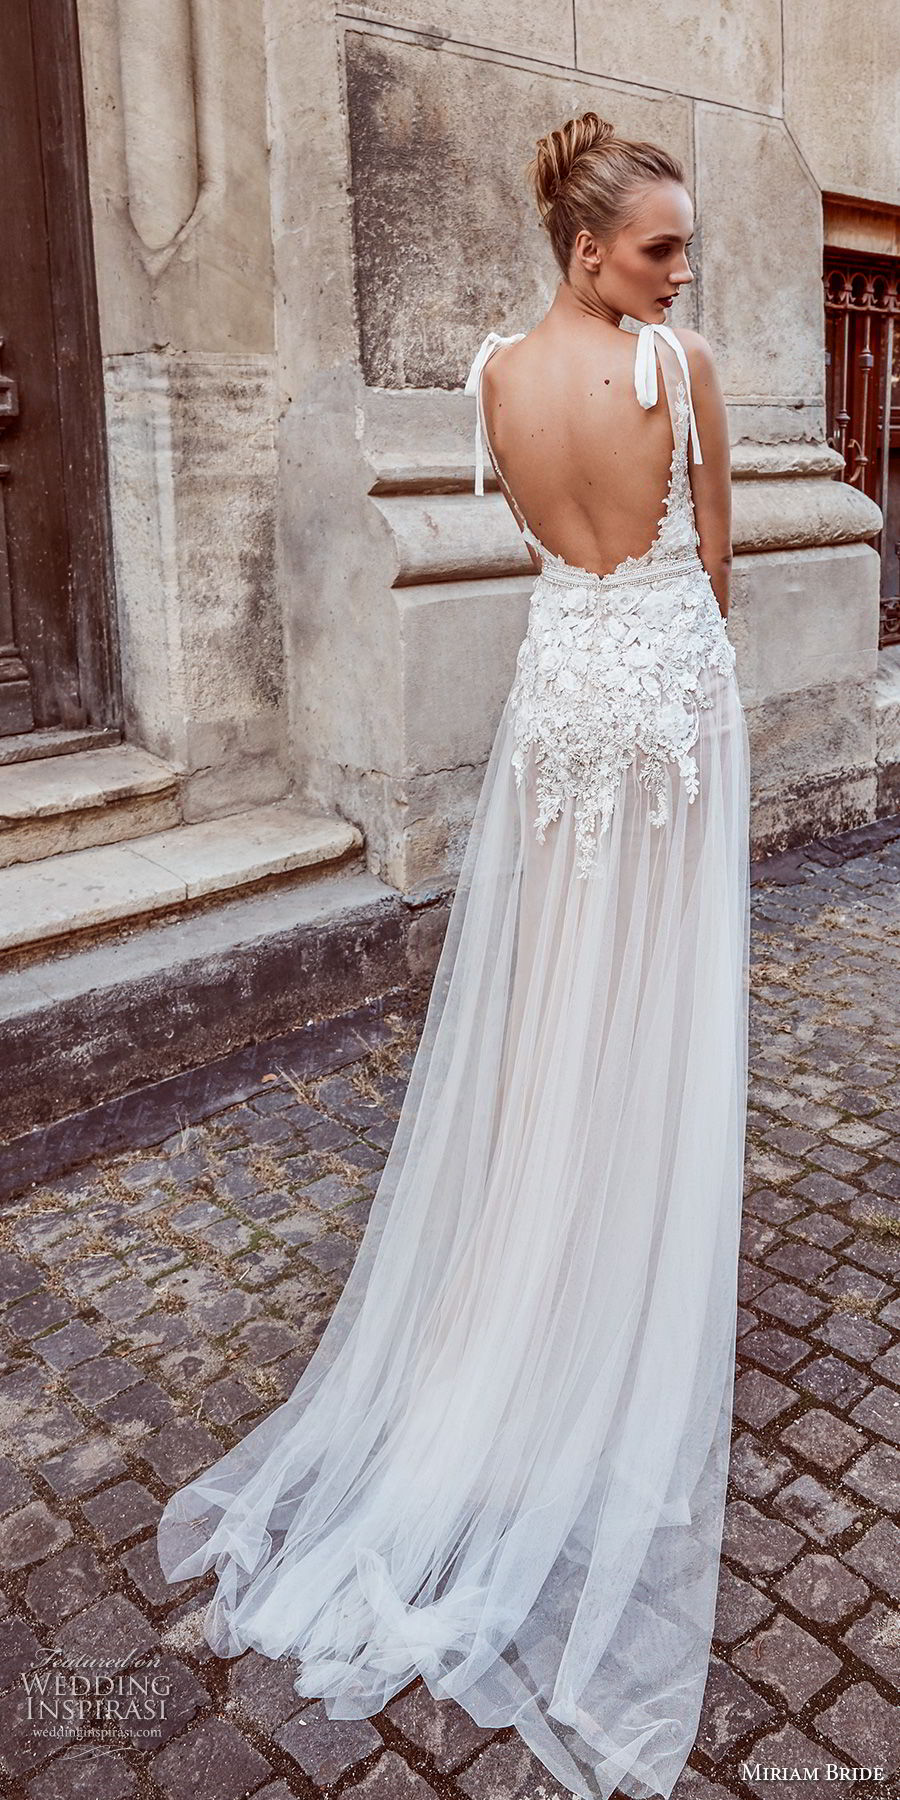 miriams bride 2018 bridal sleeveless v neck heavily embellished bodice romantic soft a line wedding dress open back sweep train (8) bv